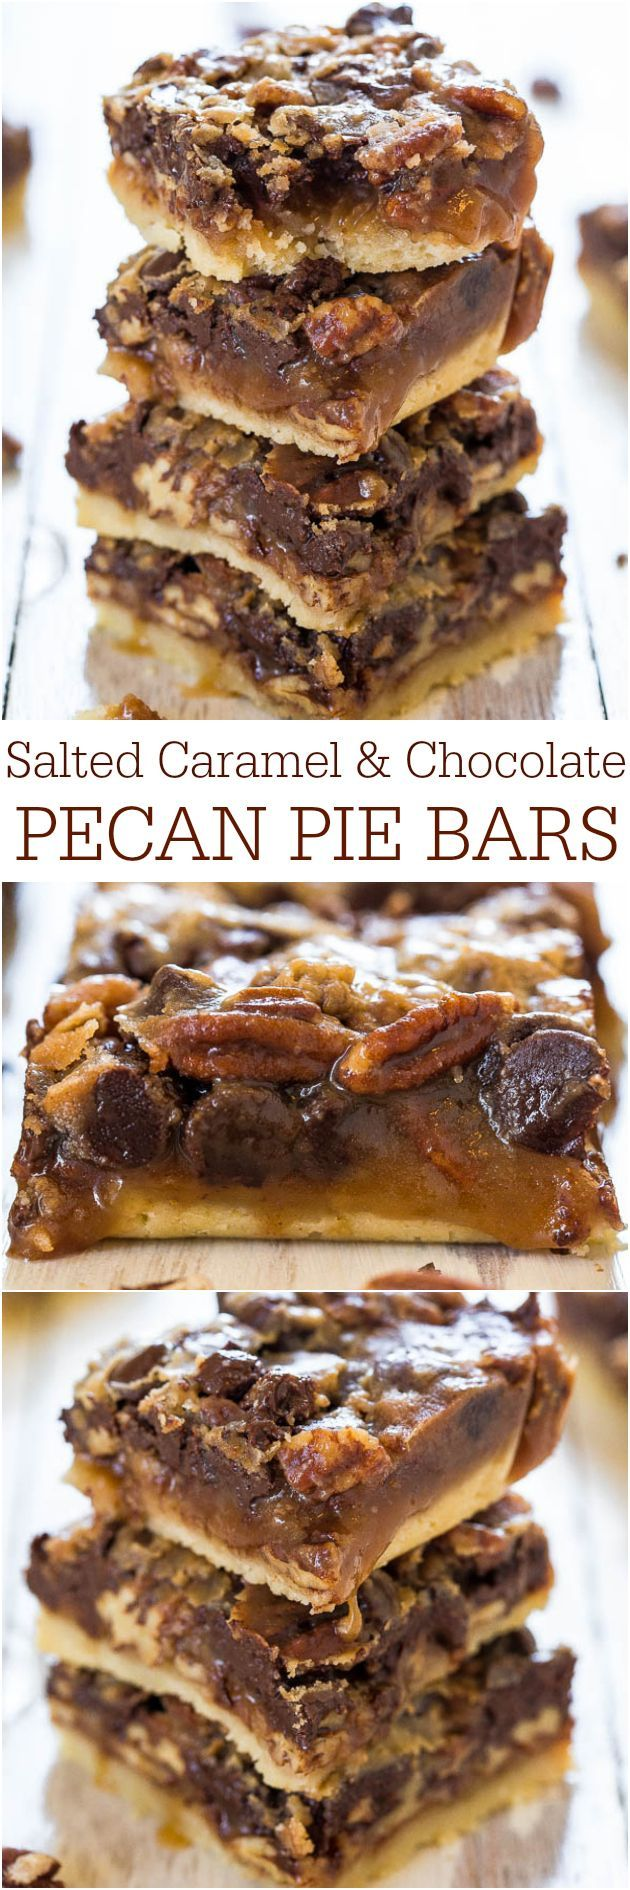 Pecan Pie Bars | Chocolate Pecan Pies, Pecan Pie Bars and Pie Bars